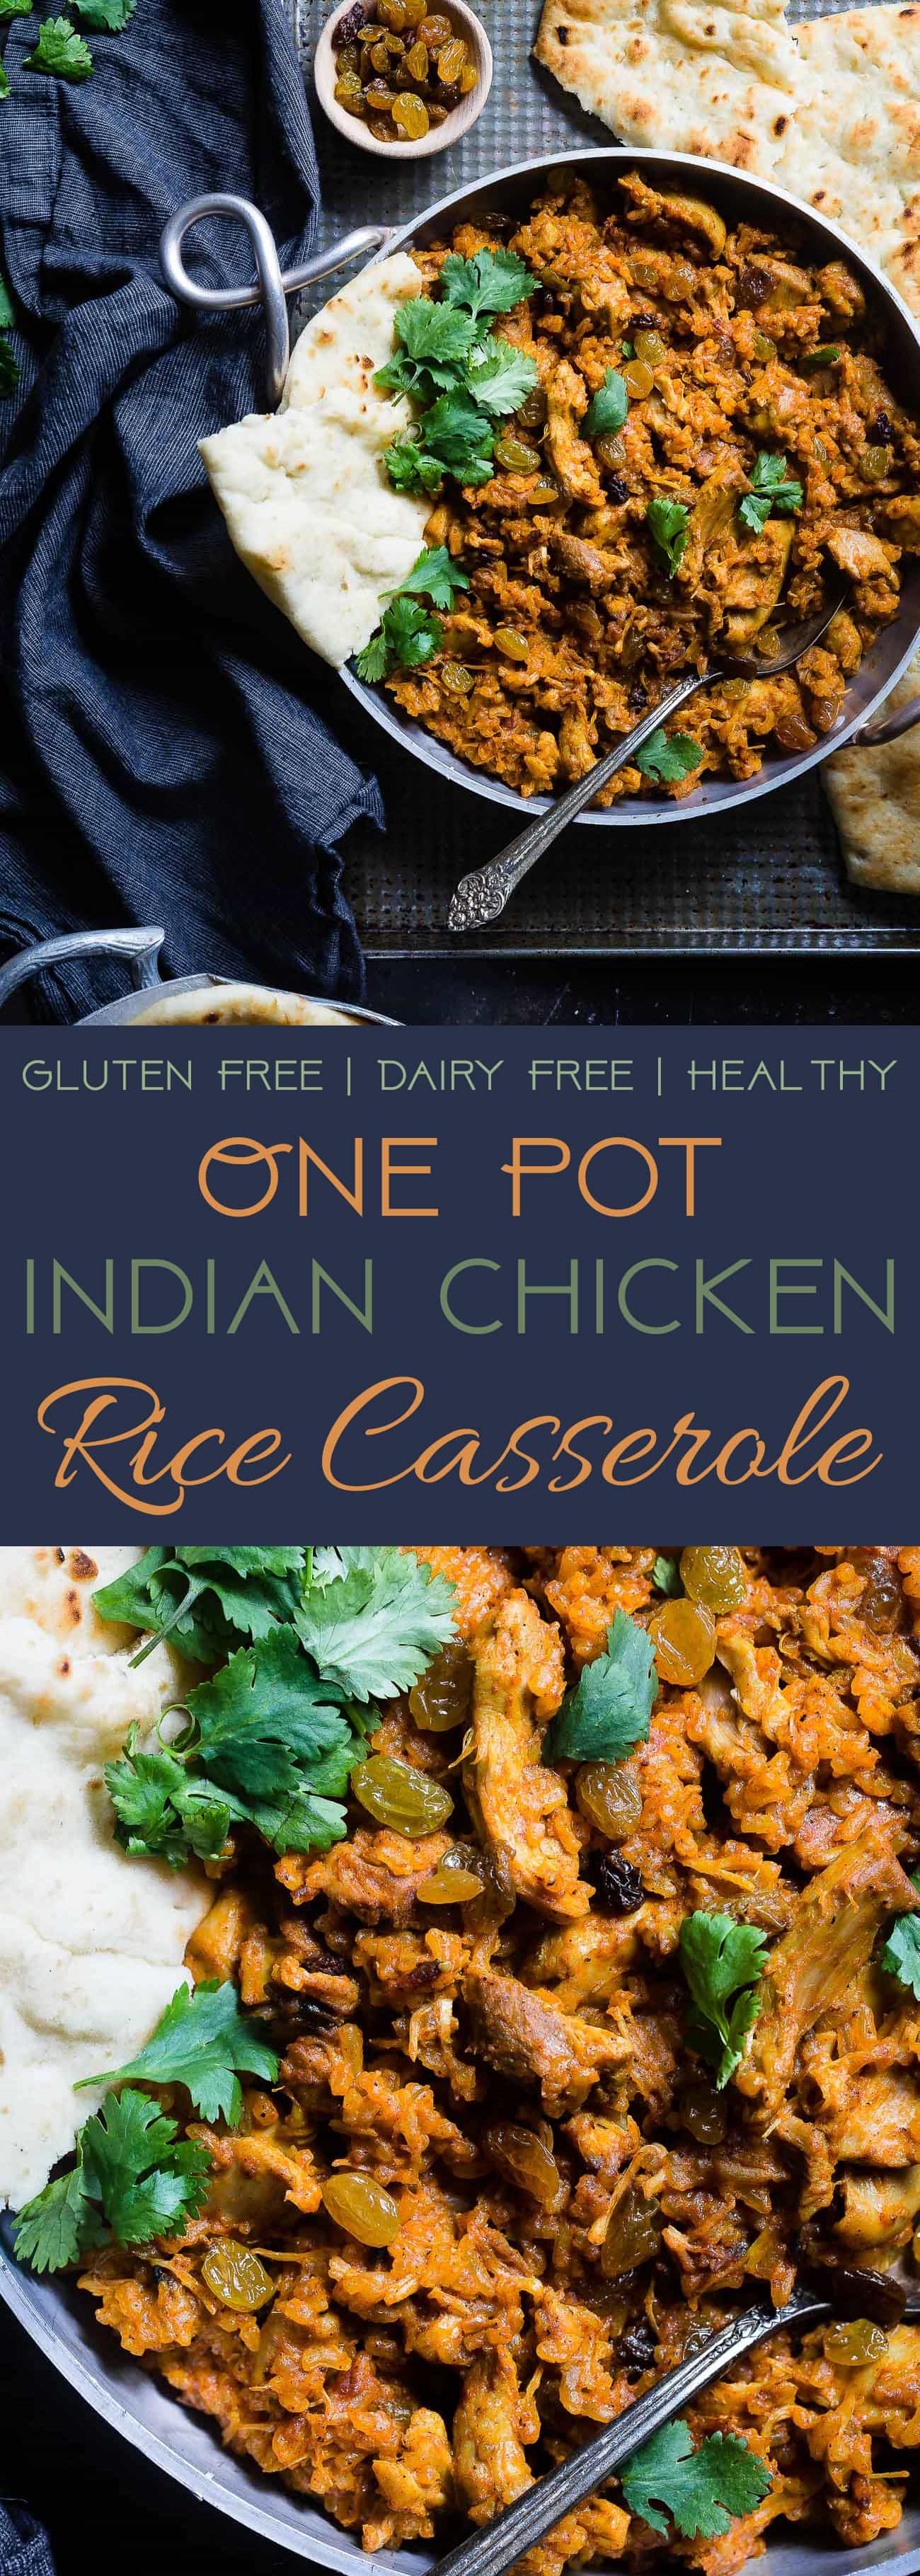 Indian Chicken Rice Casserole - This dairy and gluten free casserole is made in one pot and has delicious Indian curry flavors! It's a quick and easy, healthy weeknight meal that freezes well and makes great leftovers! | Foodfaithfitness.com | @FoodFaithFit